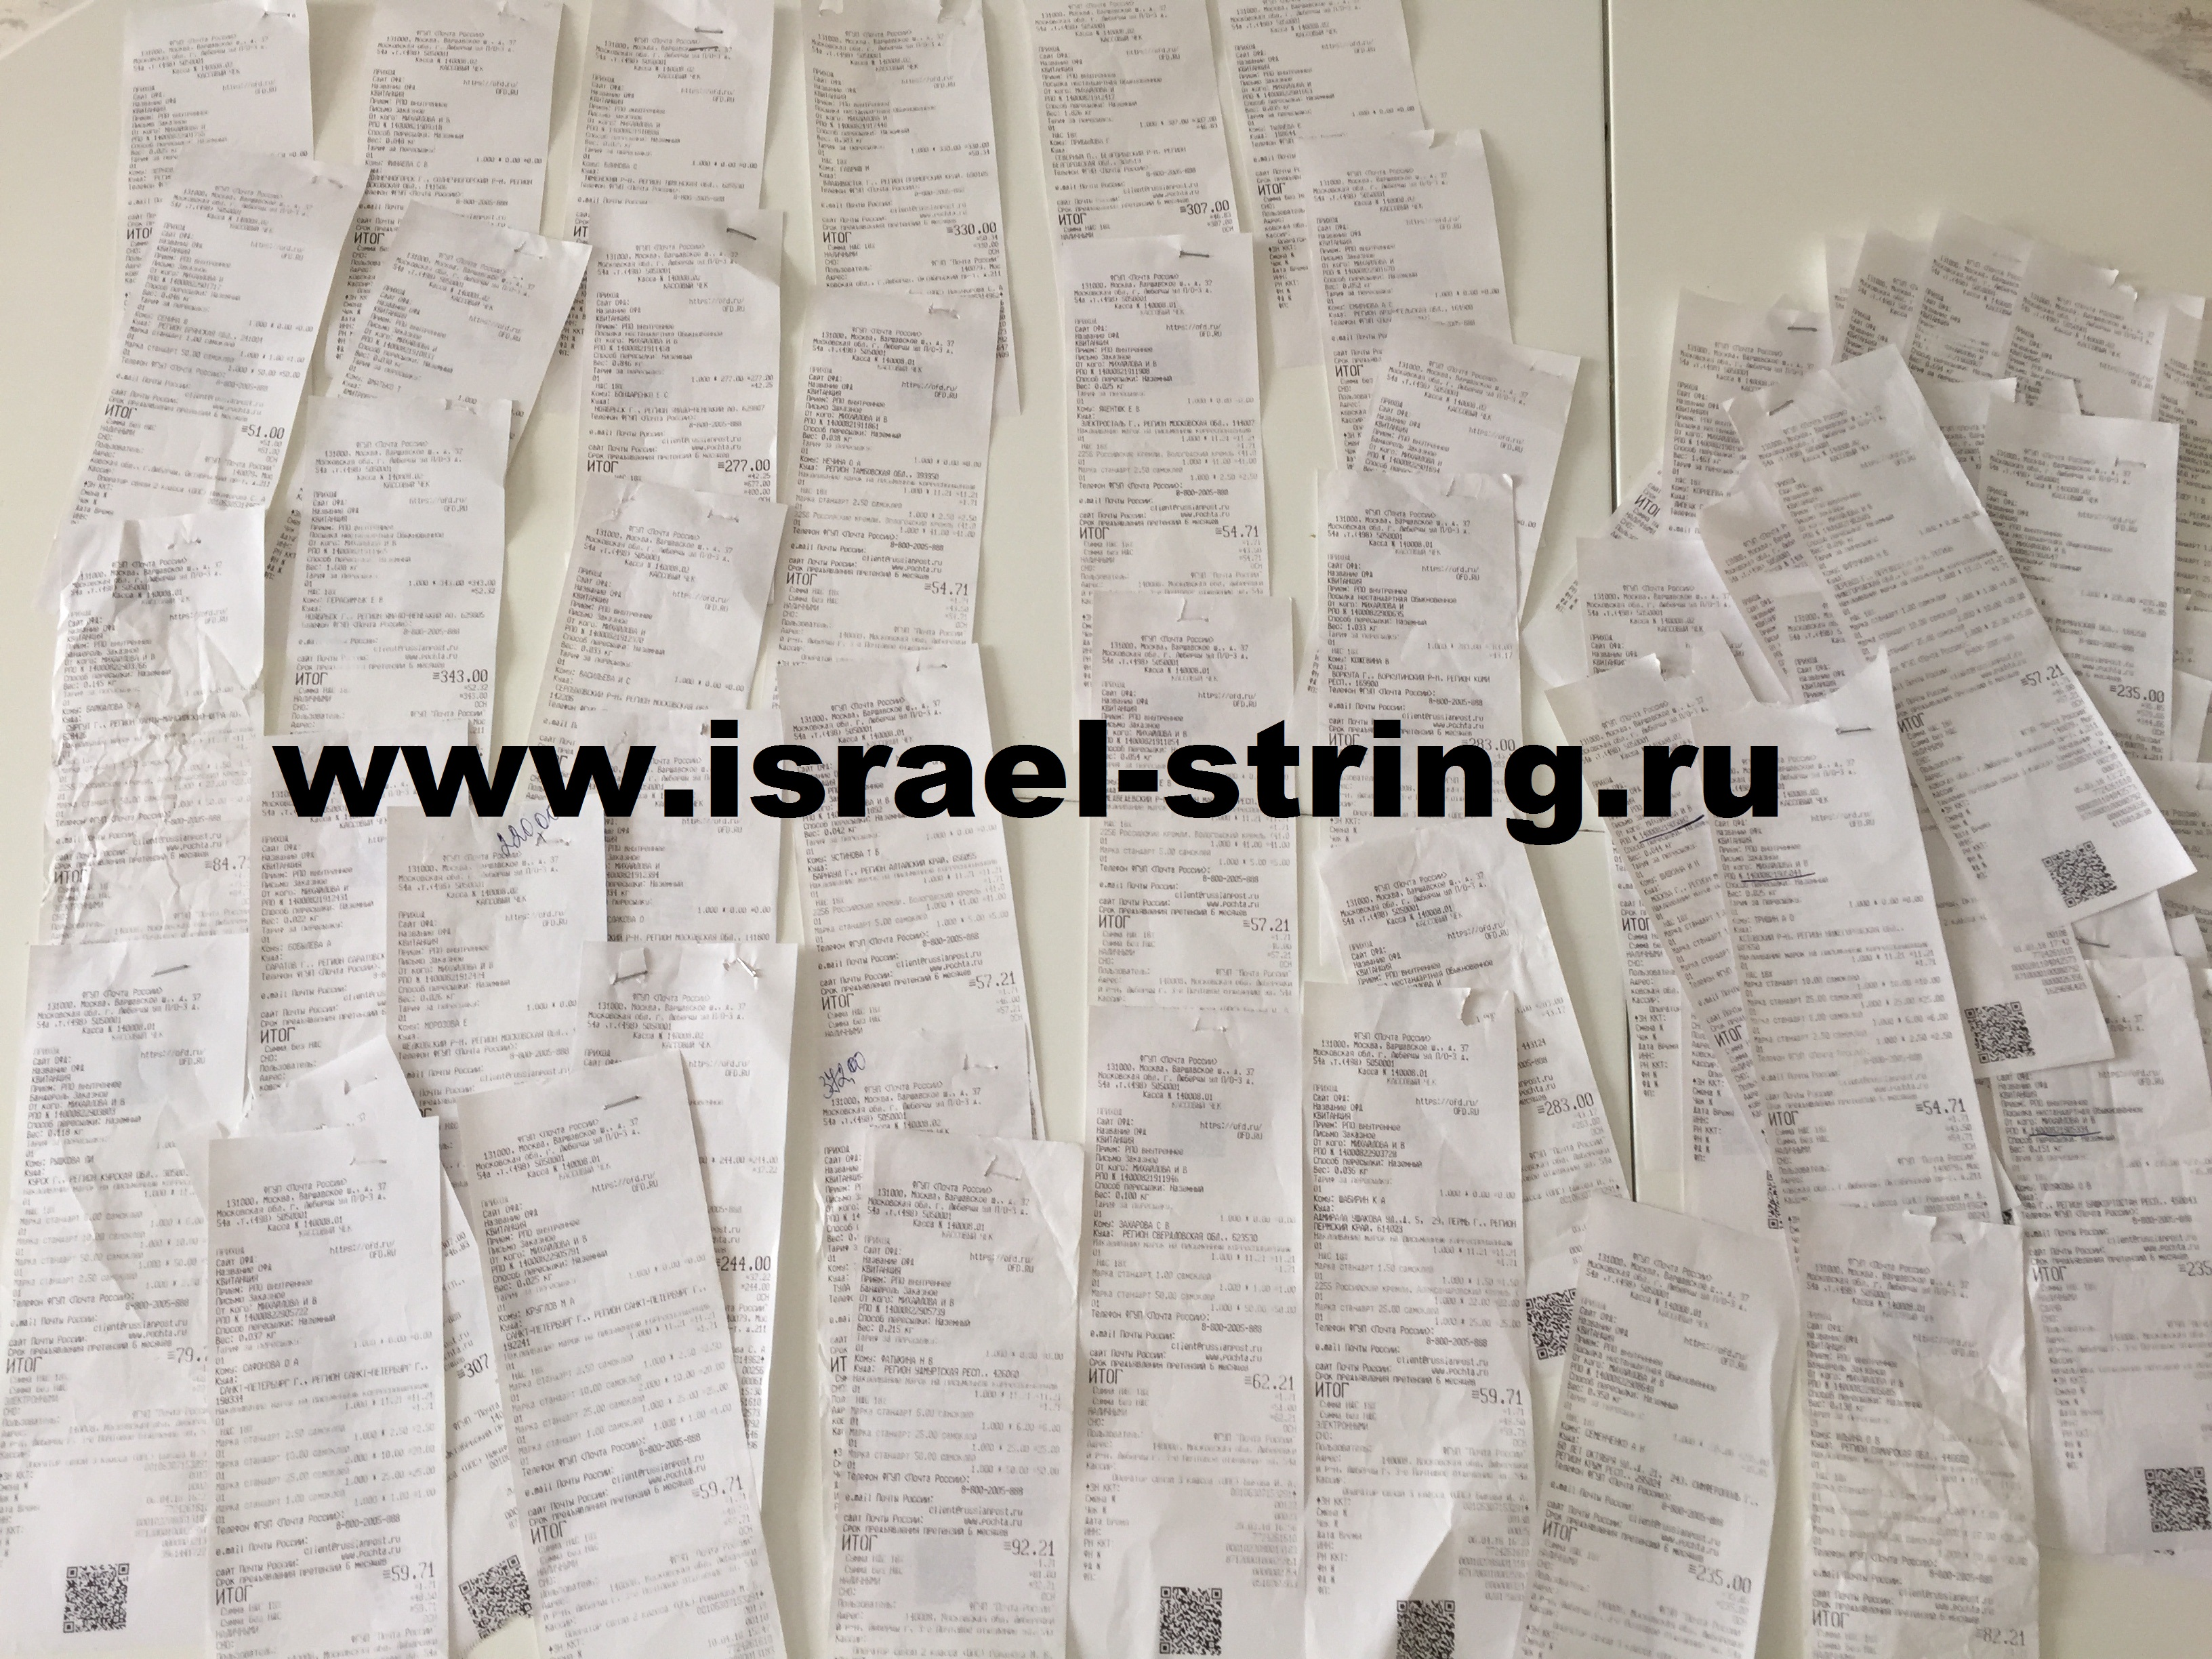 http://israel-string.ru/images/upload/IMG_4550.jpg